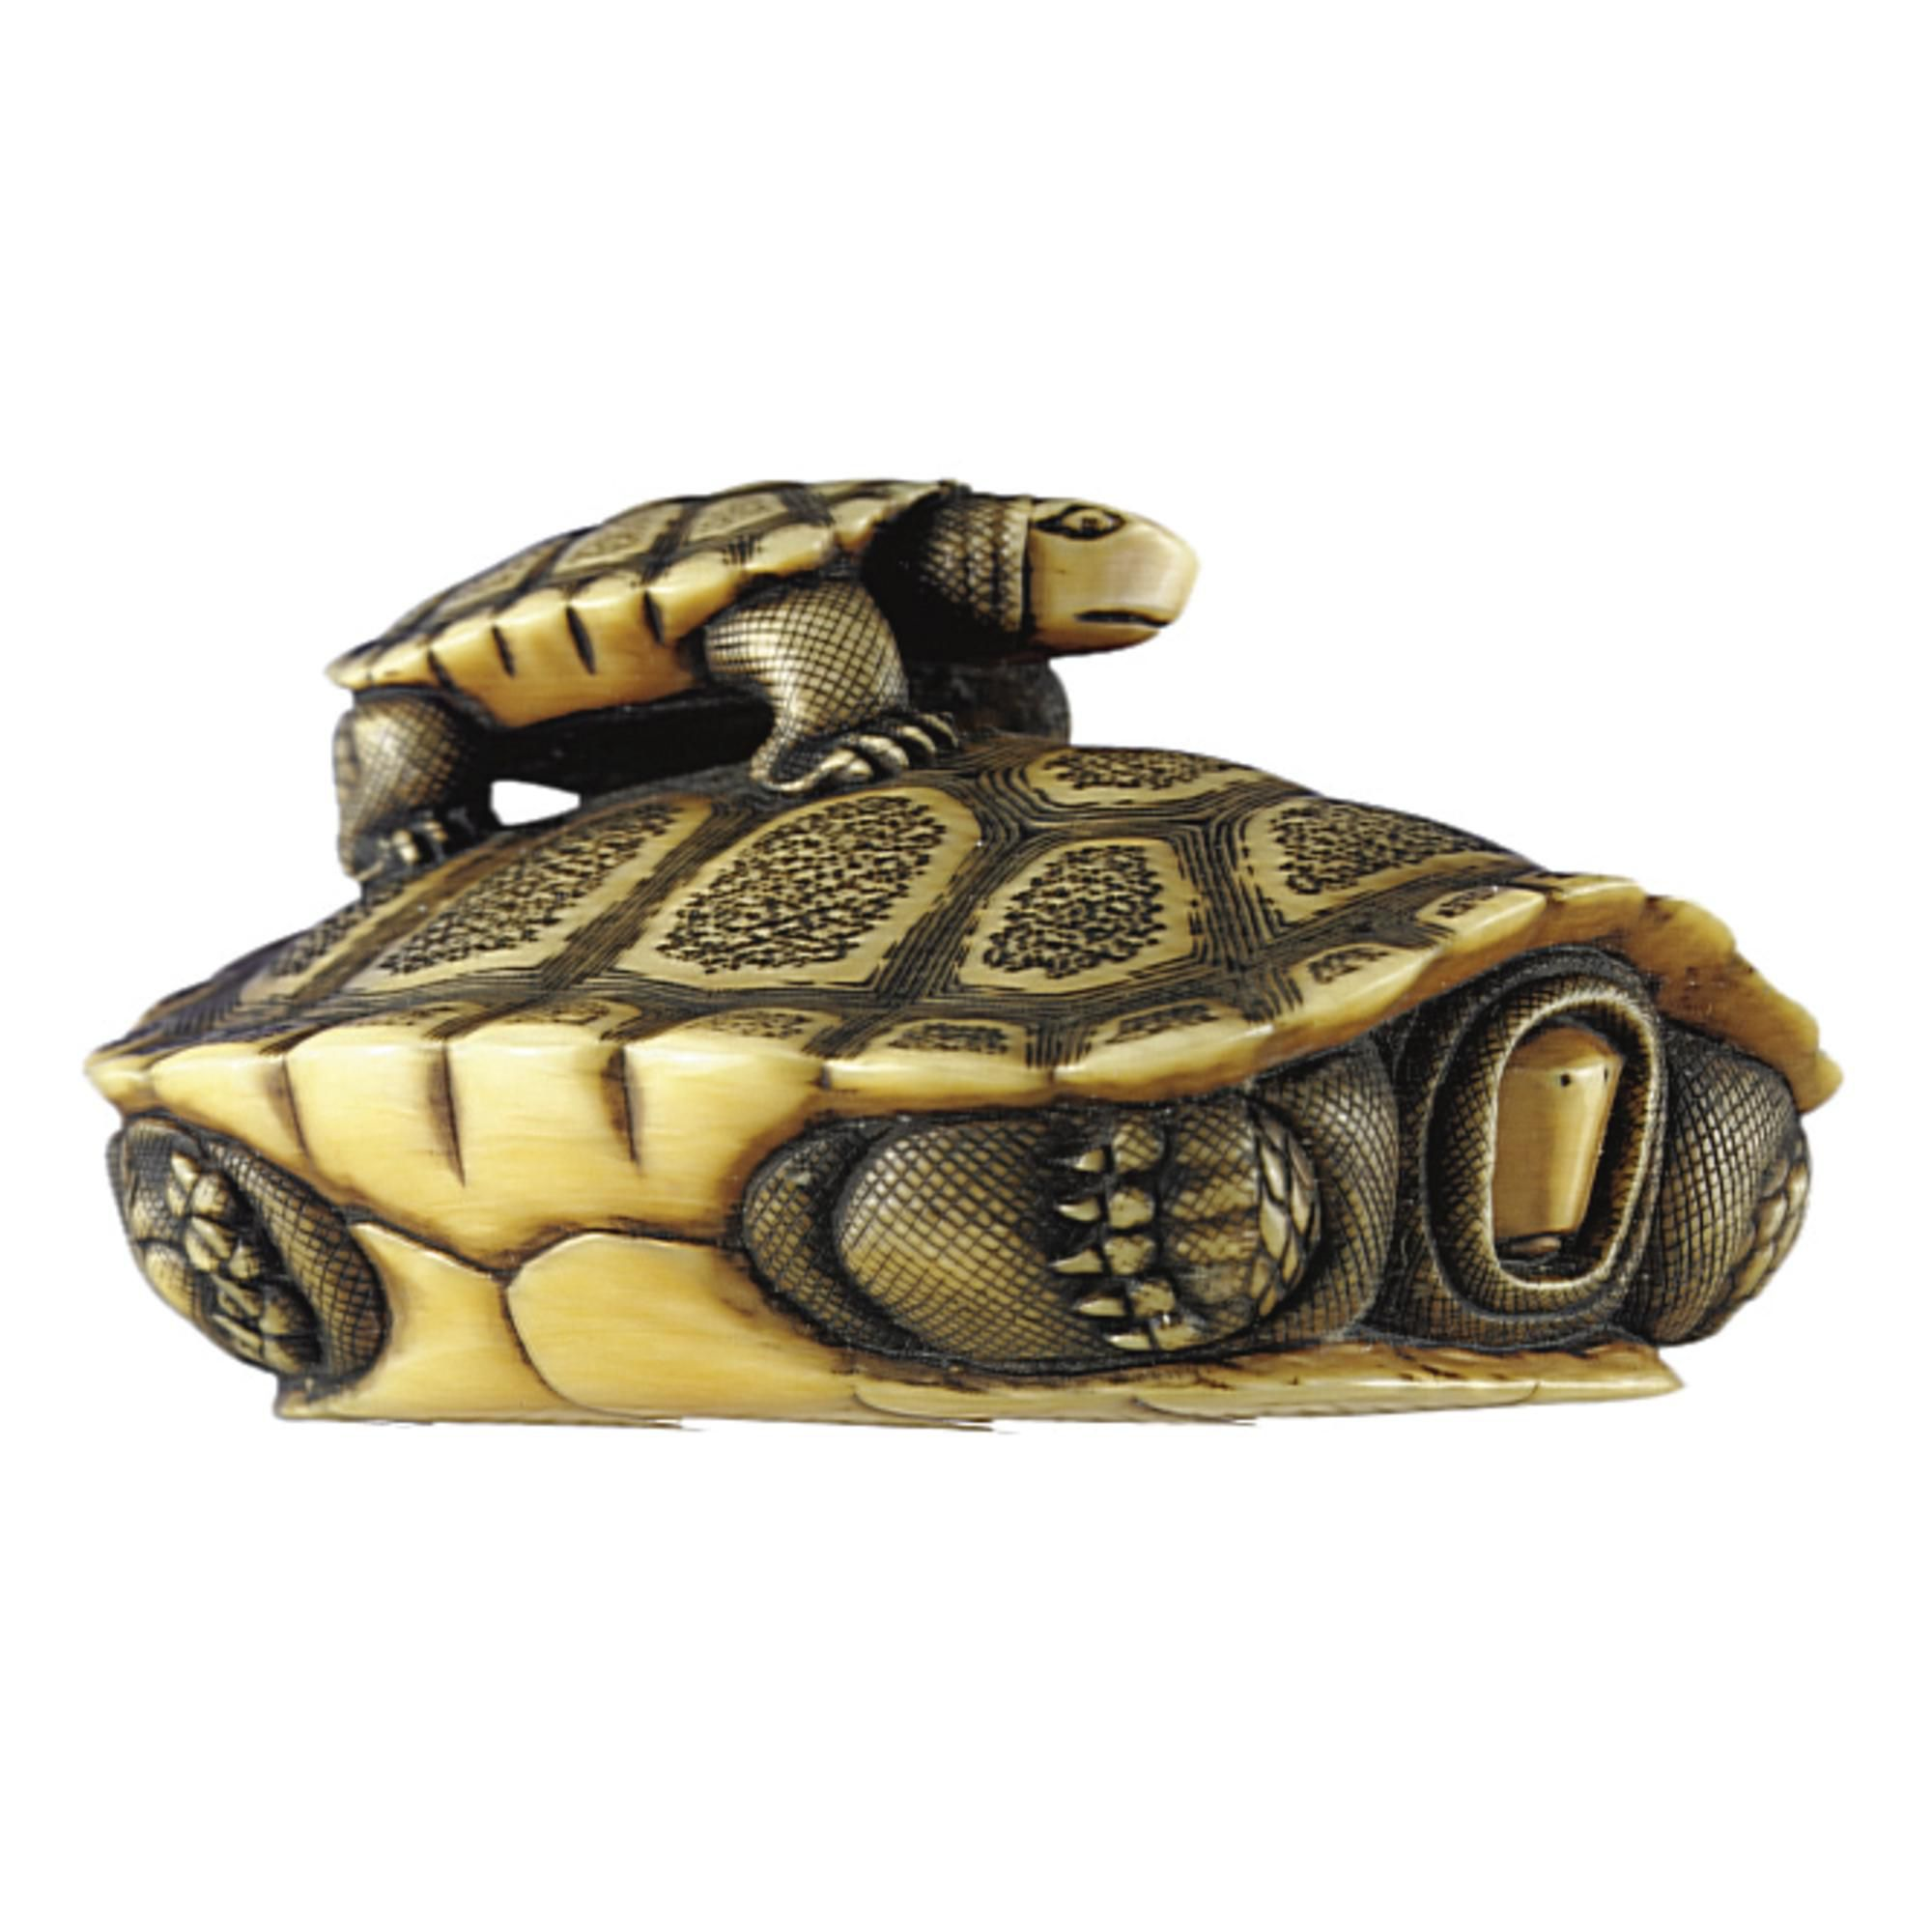 An ivory Group of a turtle and young by Ohara Mitsusada, Osaka, 19th century   Lot   Sotheby's